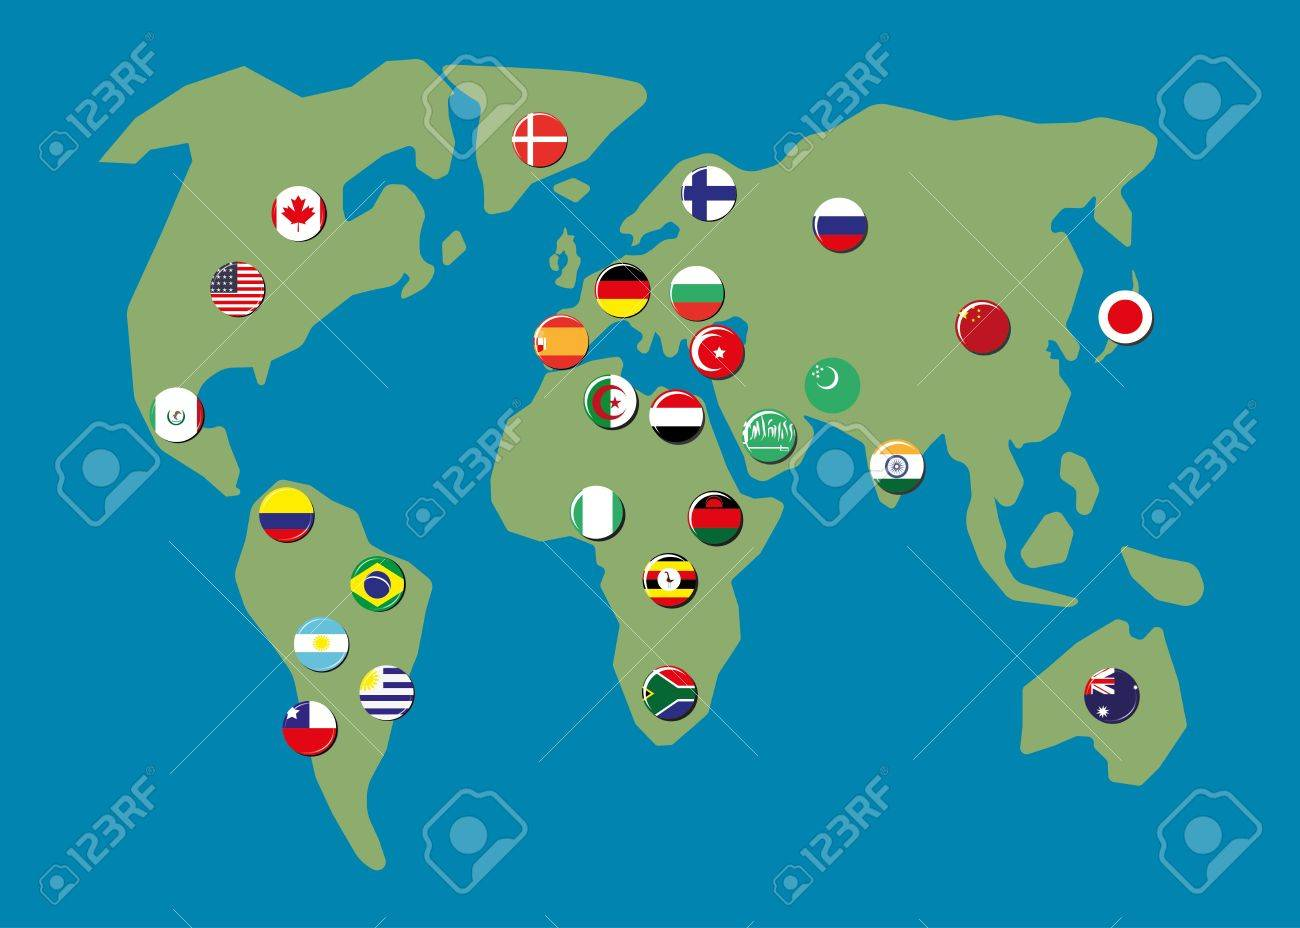 Map world with biggest country flag badges royalty free cliparts map world with biggest country flag badges stock vector 57406390 gumiabroncs Choice Image